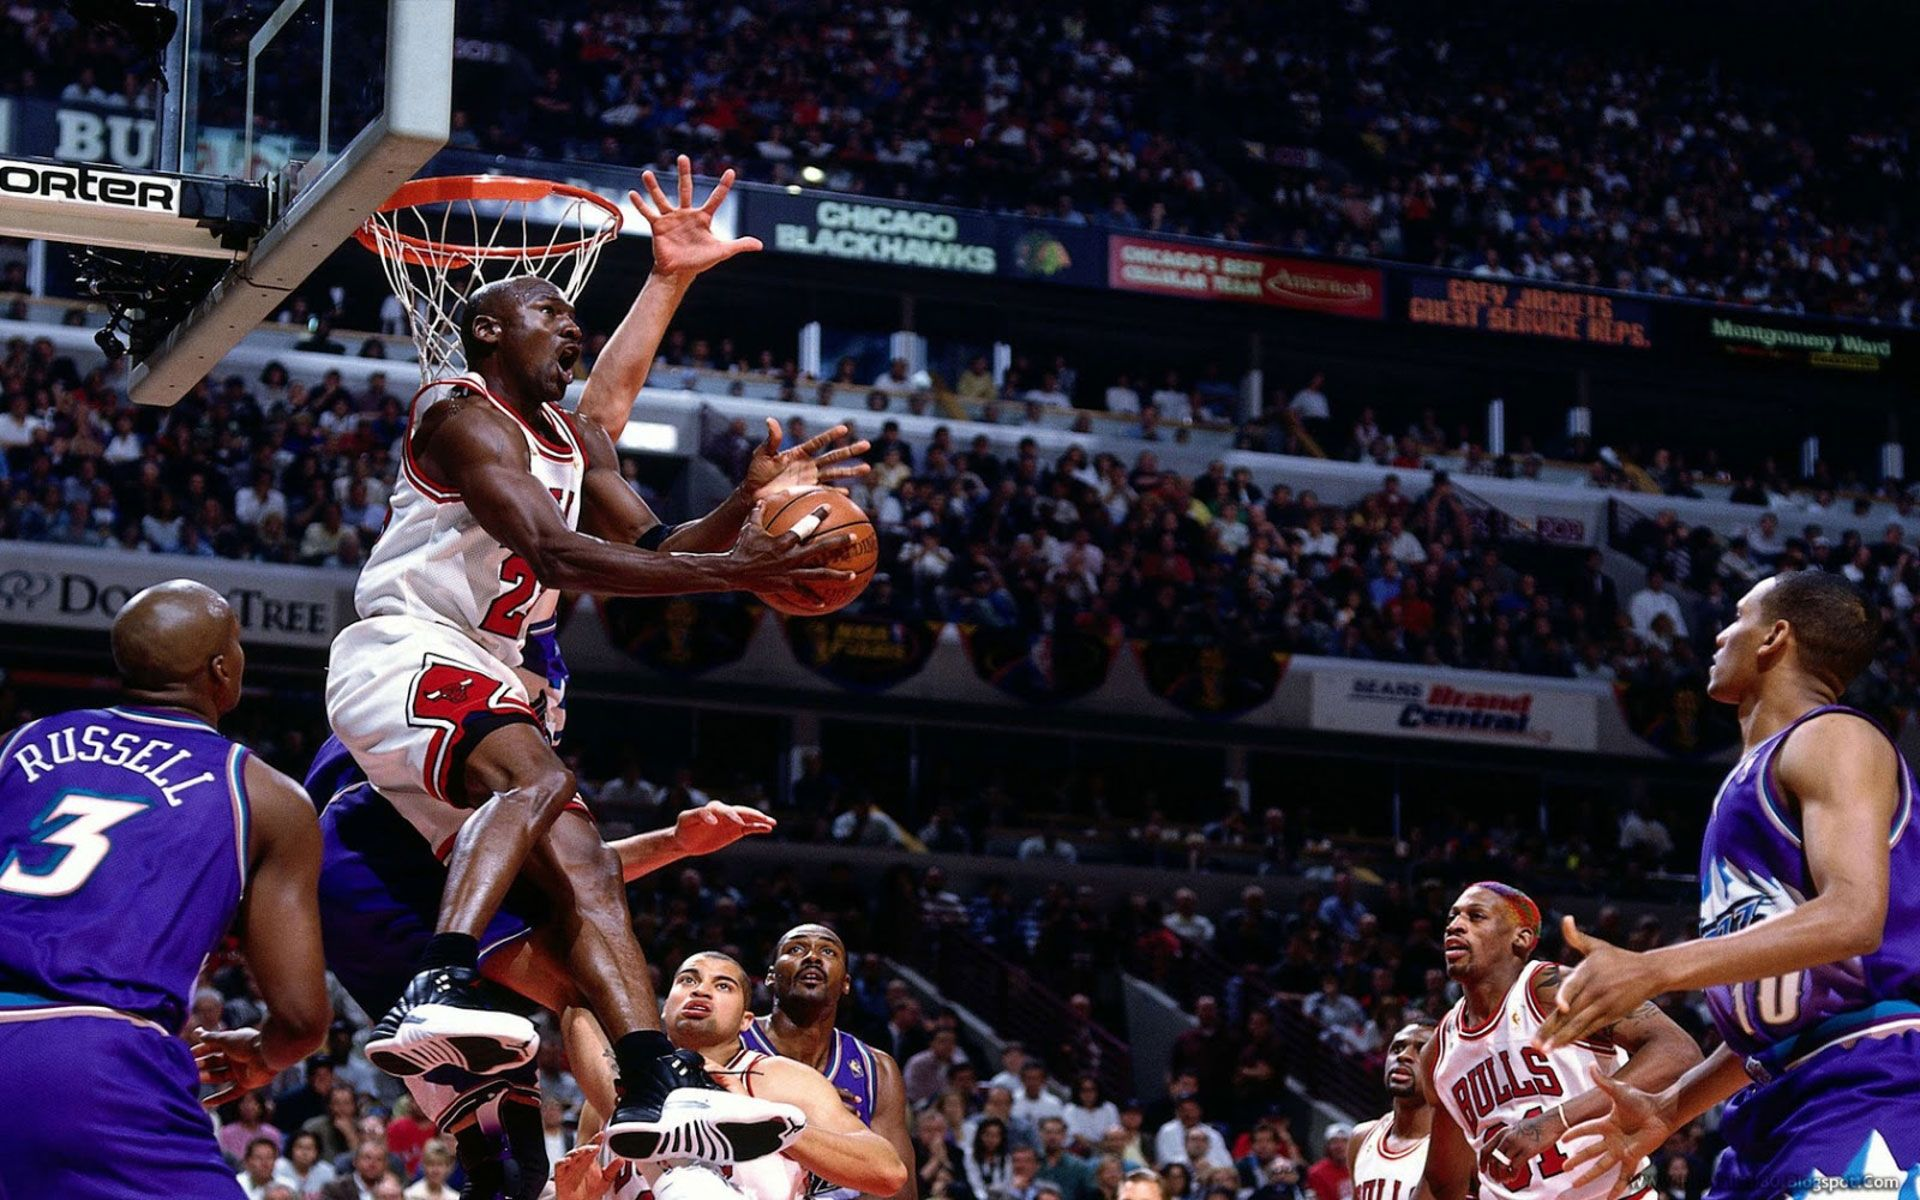 MJ23 rising above the competition #9ine | MJ | Pinterest